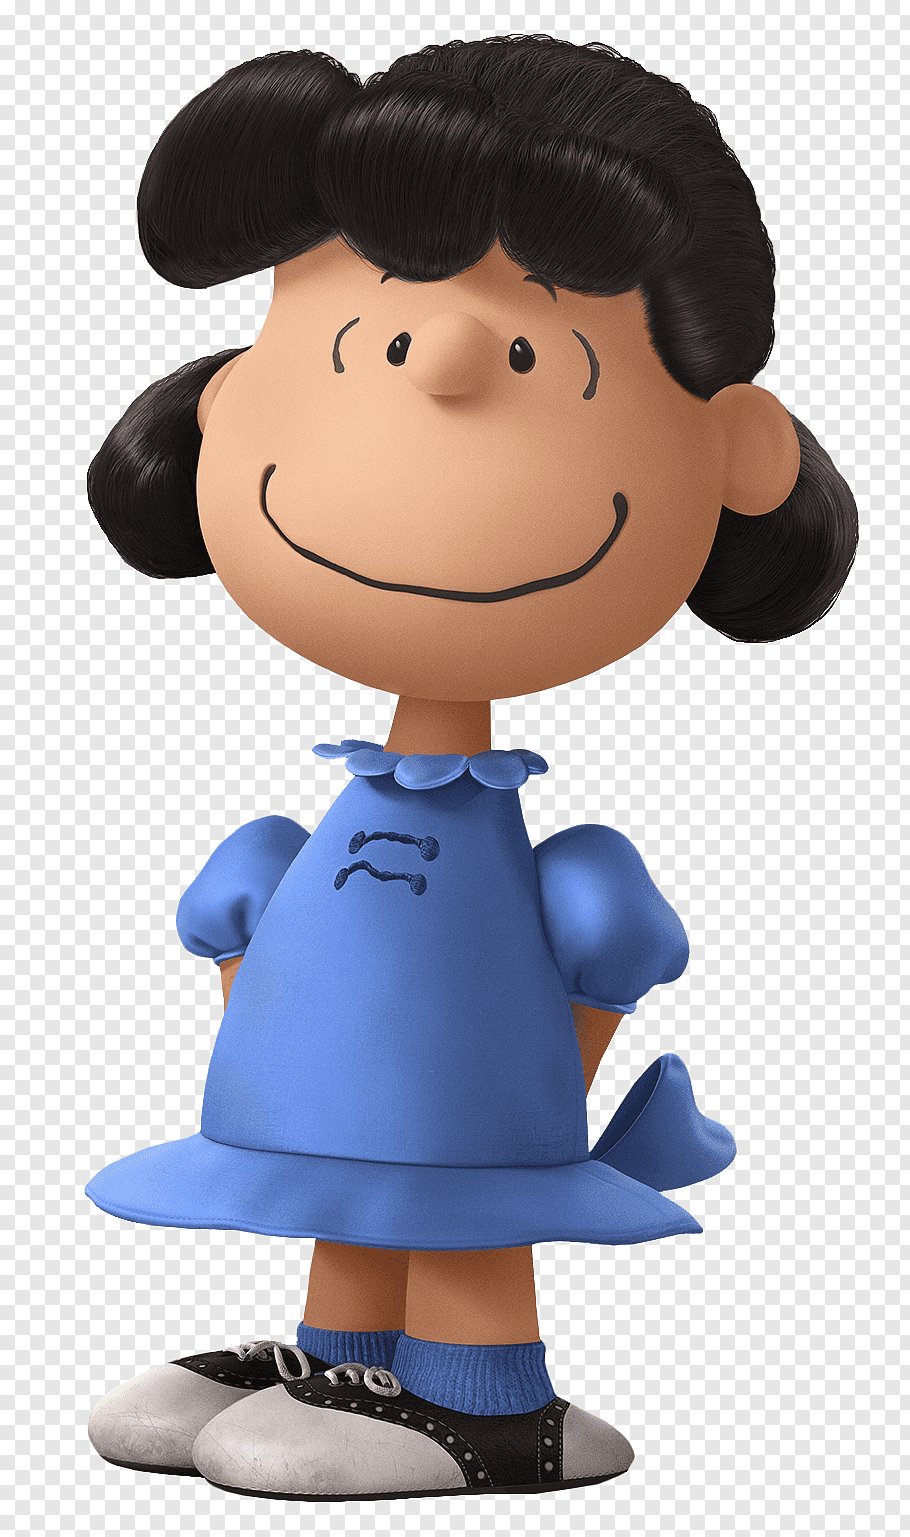 Peanuts comic girl wearing blue dress illustration, Lucy van.